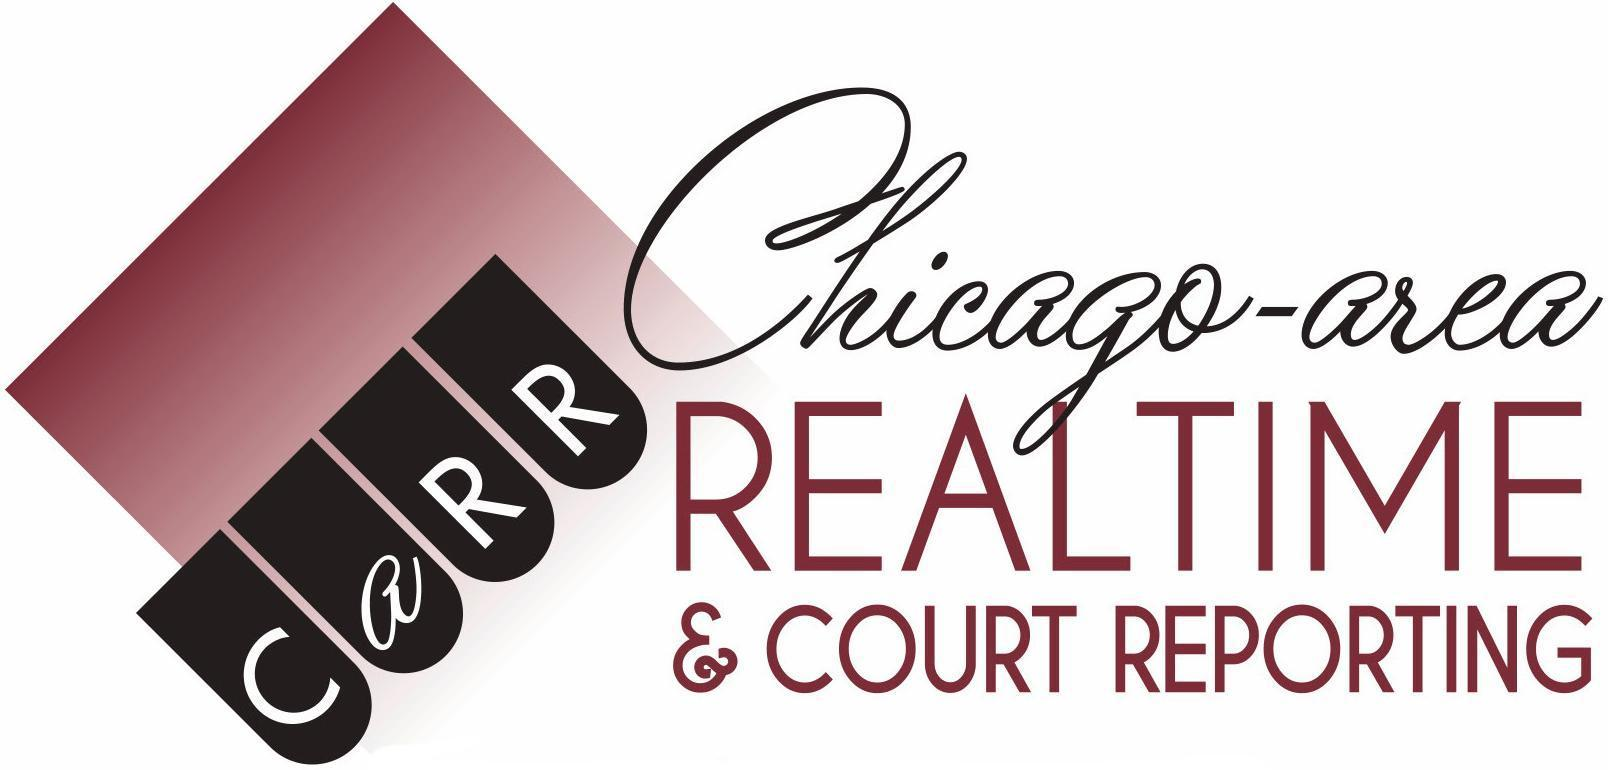 Chicago-area Realtime & Court Reporting